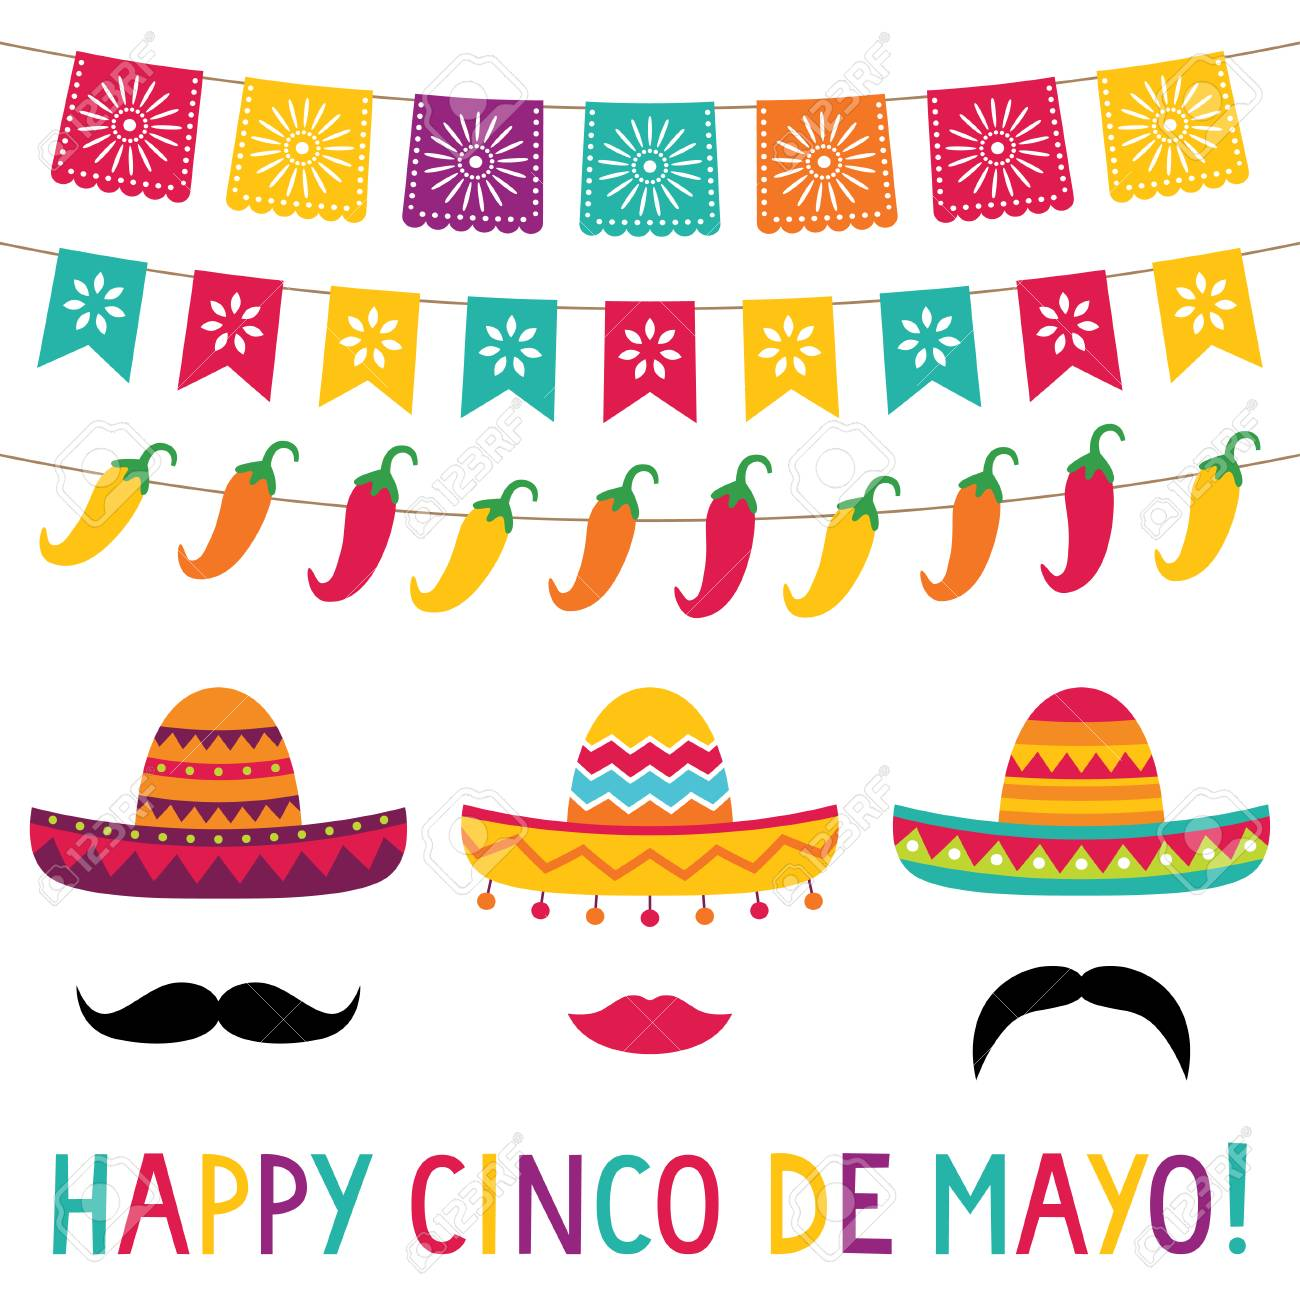 Cinco De Mayo Banners And Sombreros Set Royalty Free Cliparts.